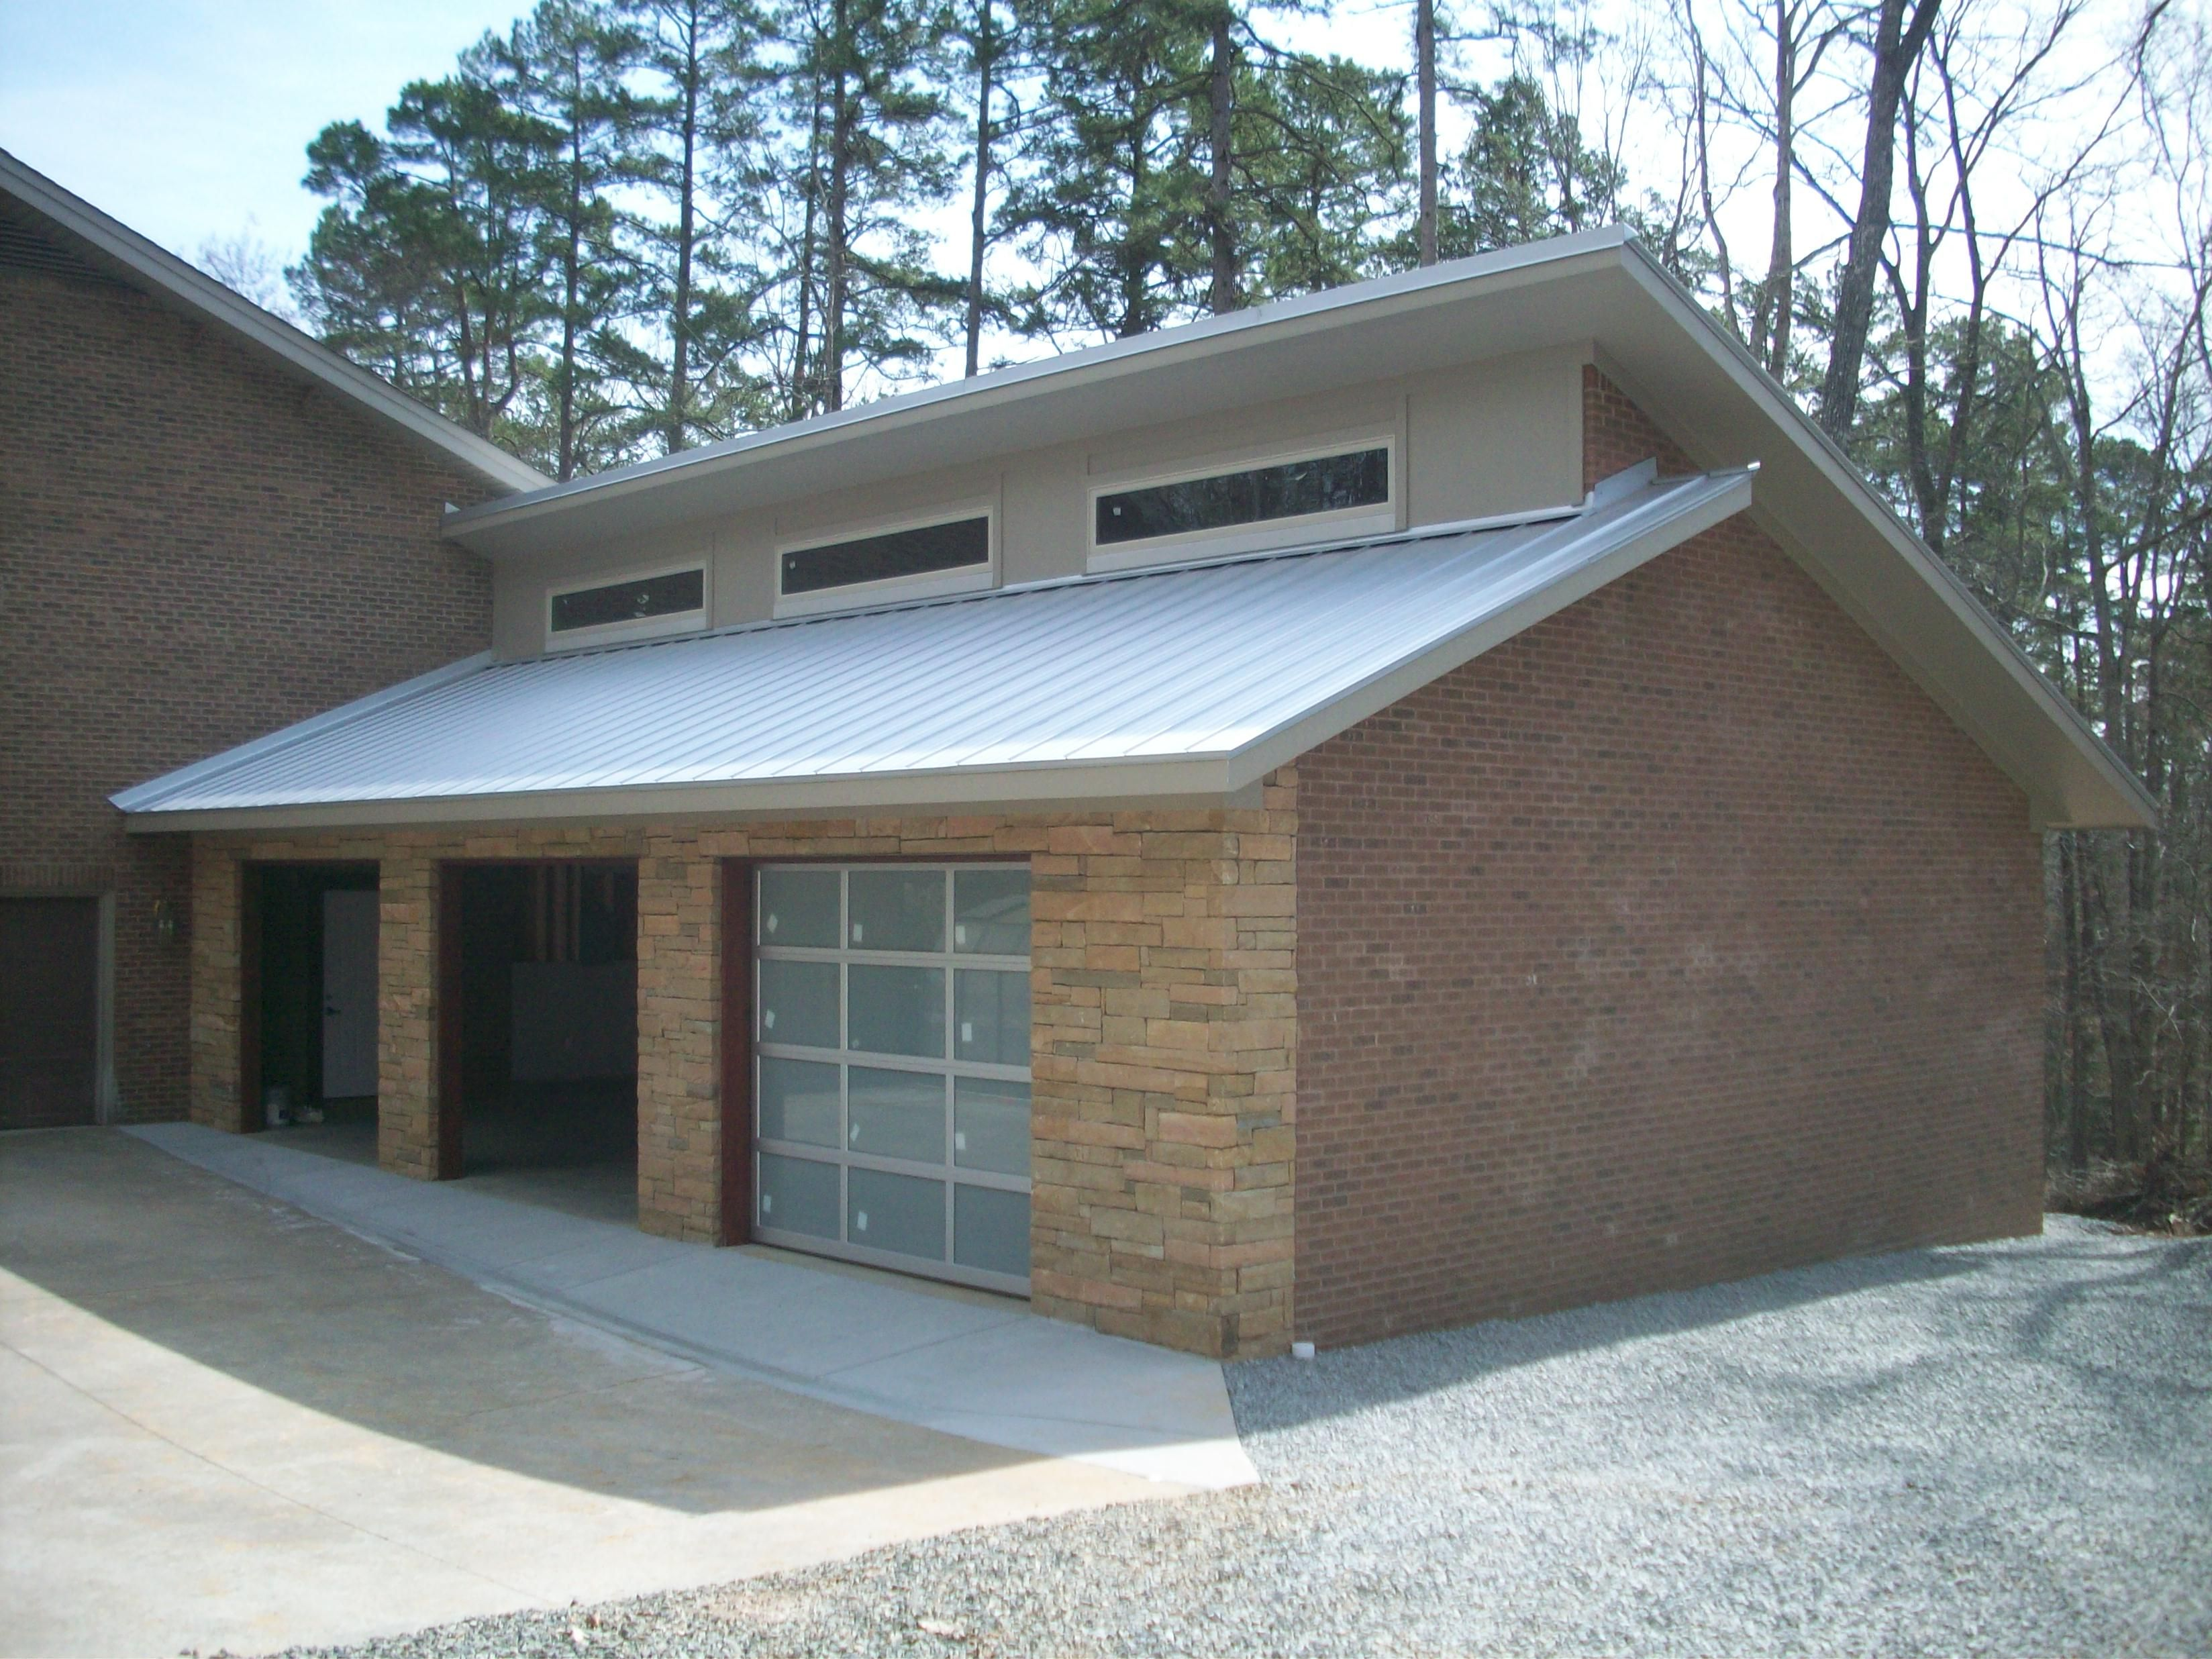 Garage clerestory windows google search garage the for House plans with clerestory windows